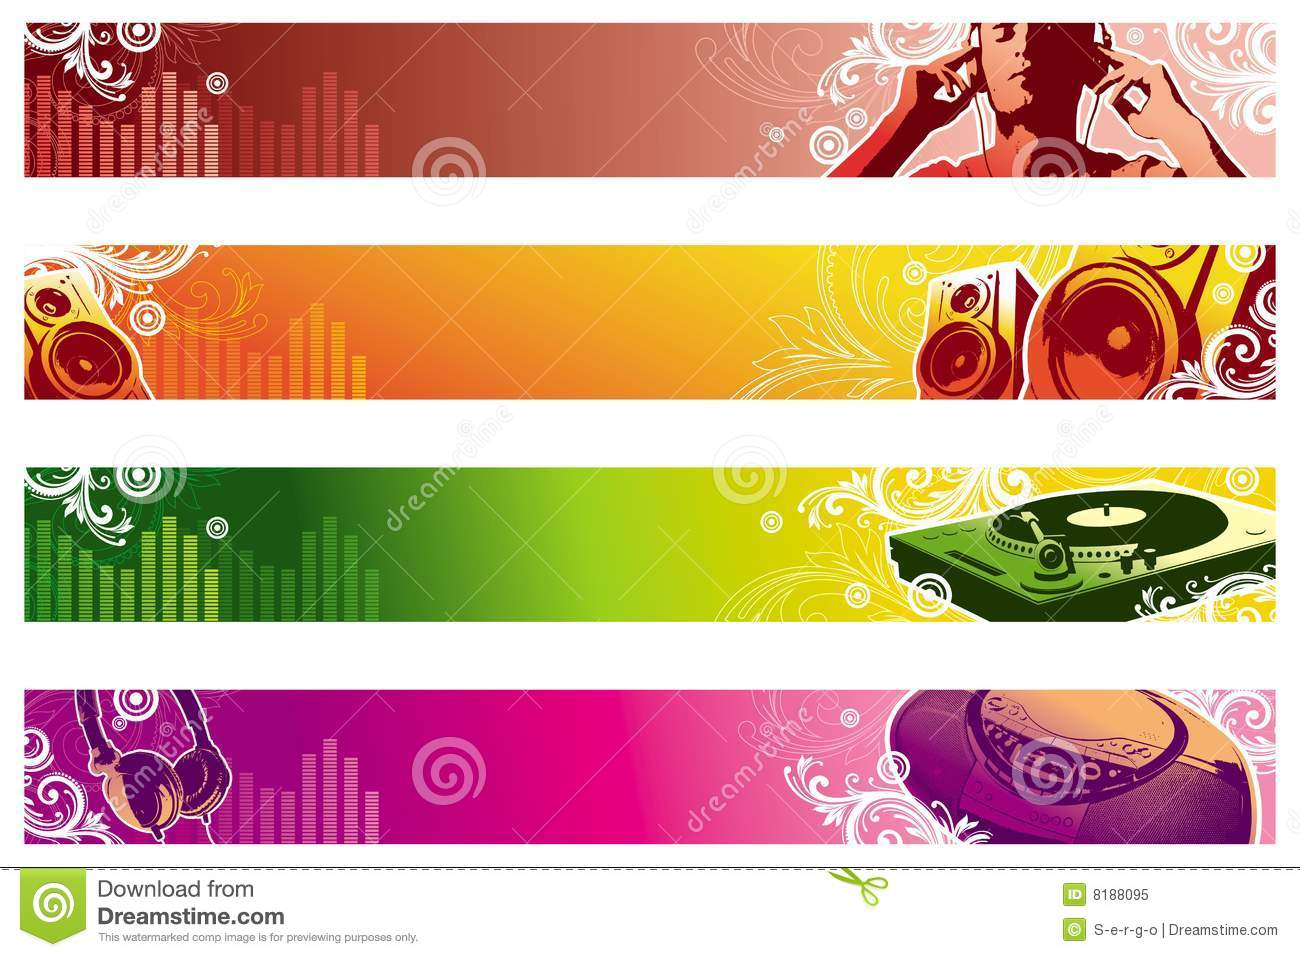 website banners: